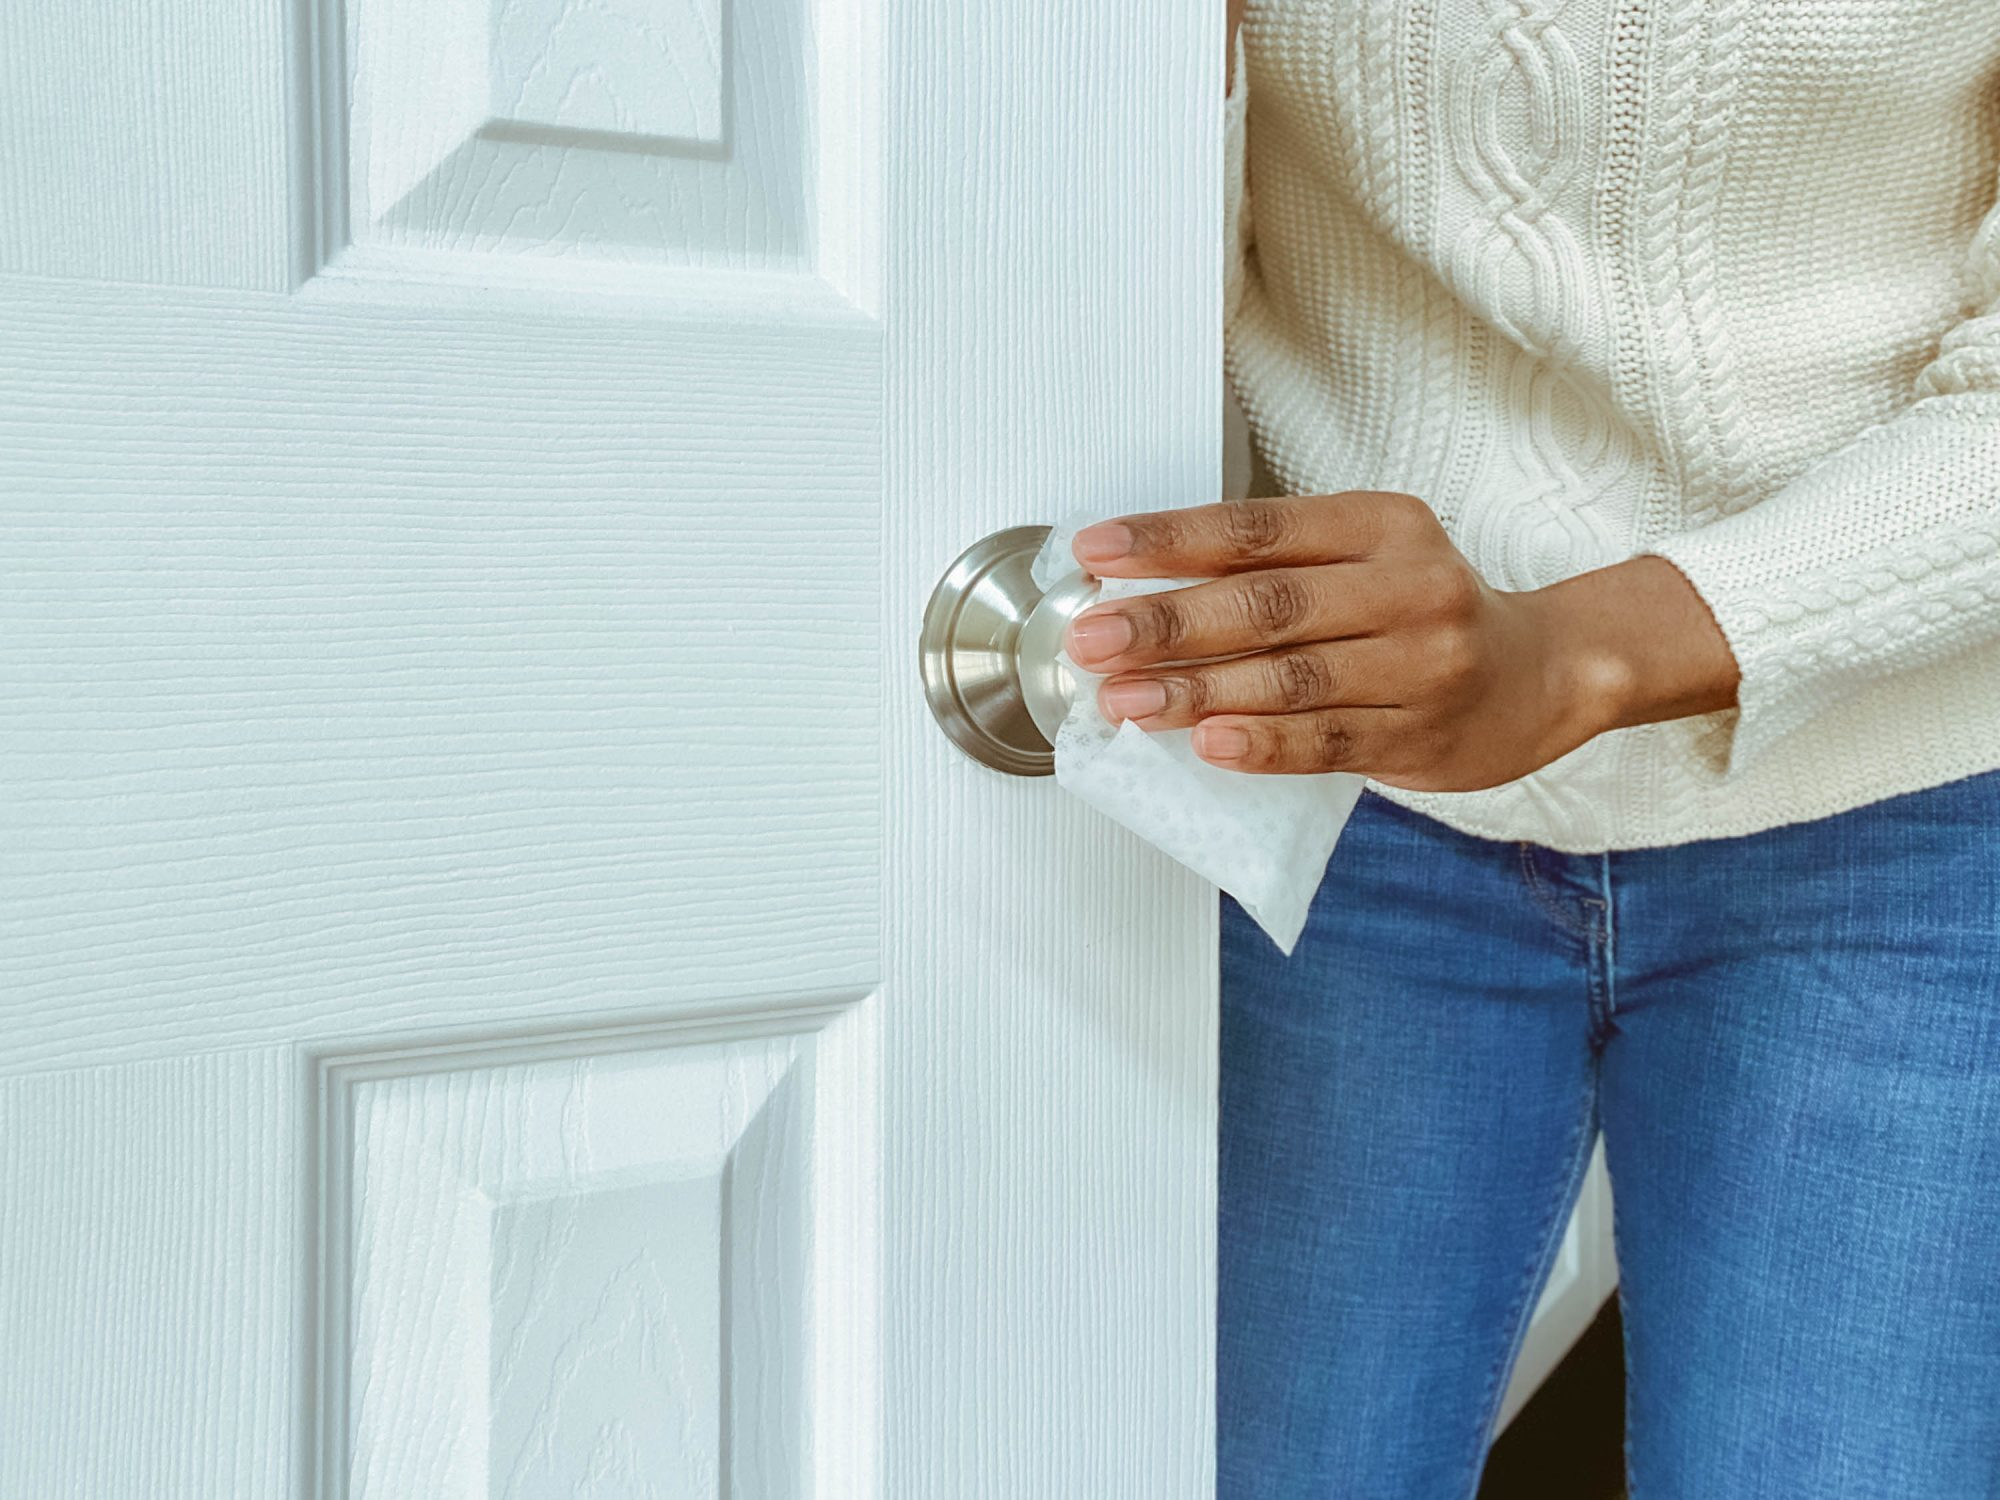 Woman Cleans Doorknob on Interior Door